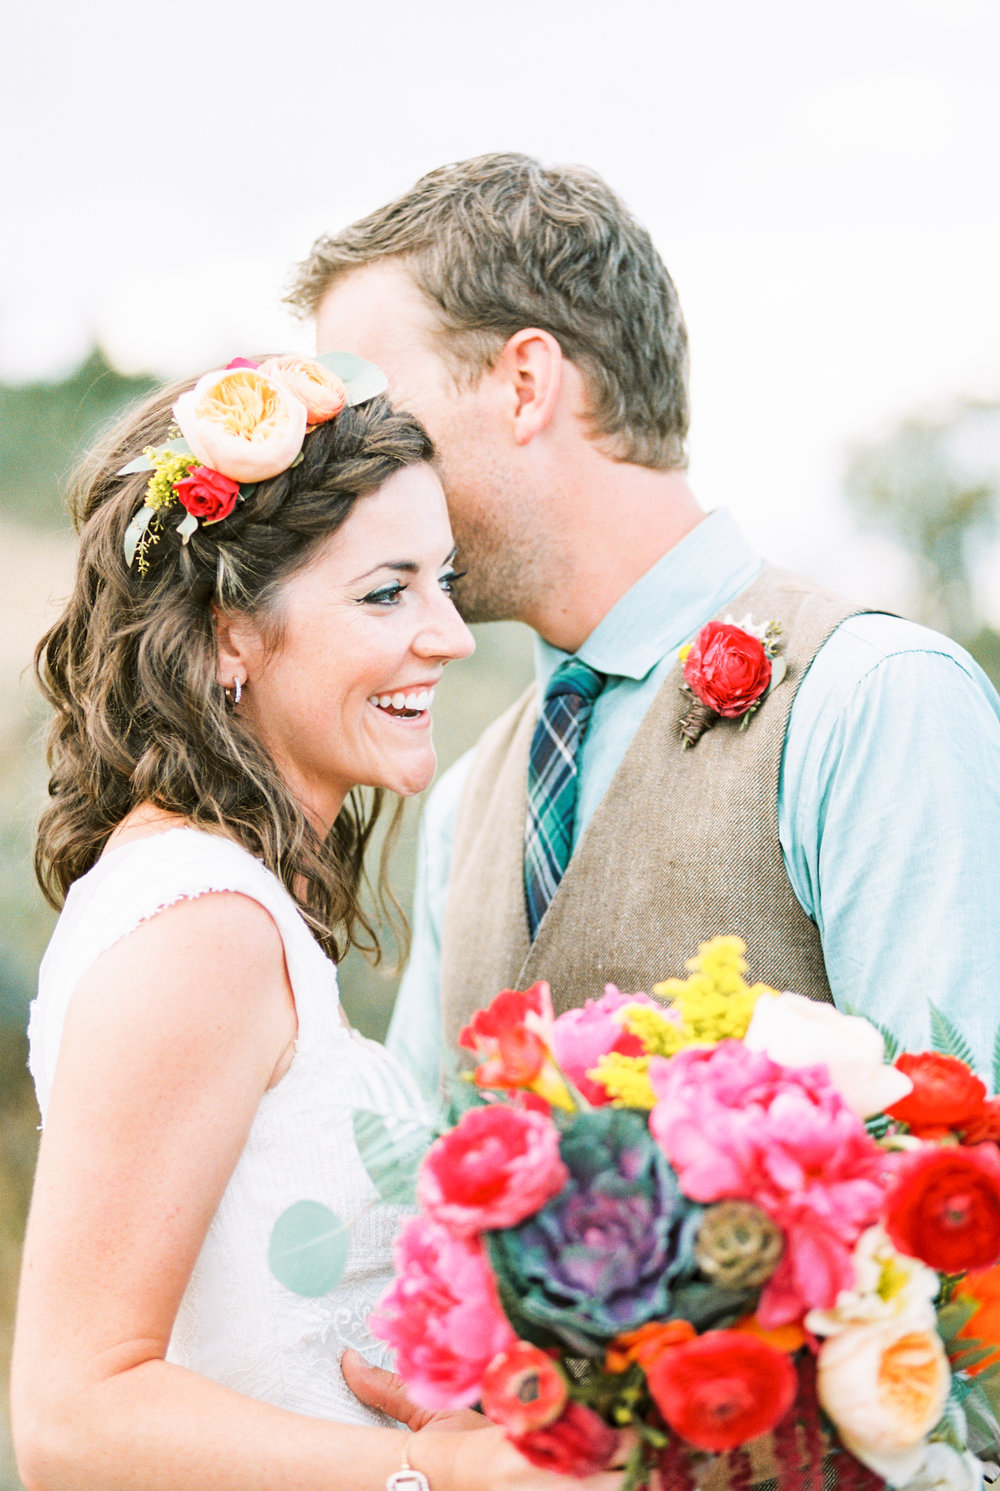 Flowers by Lace and Lilies, bright bold and colorful bouquet, flower crown/halo and boutonniere, mountain summer wedding - peonies, garden rose, ranunculus and kale